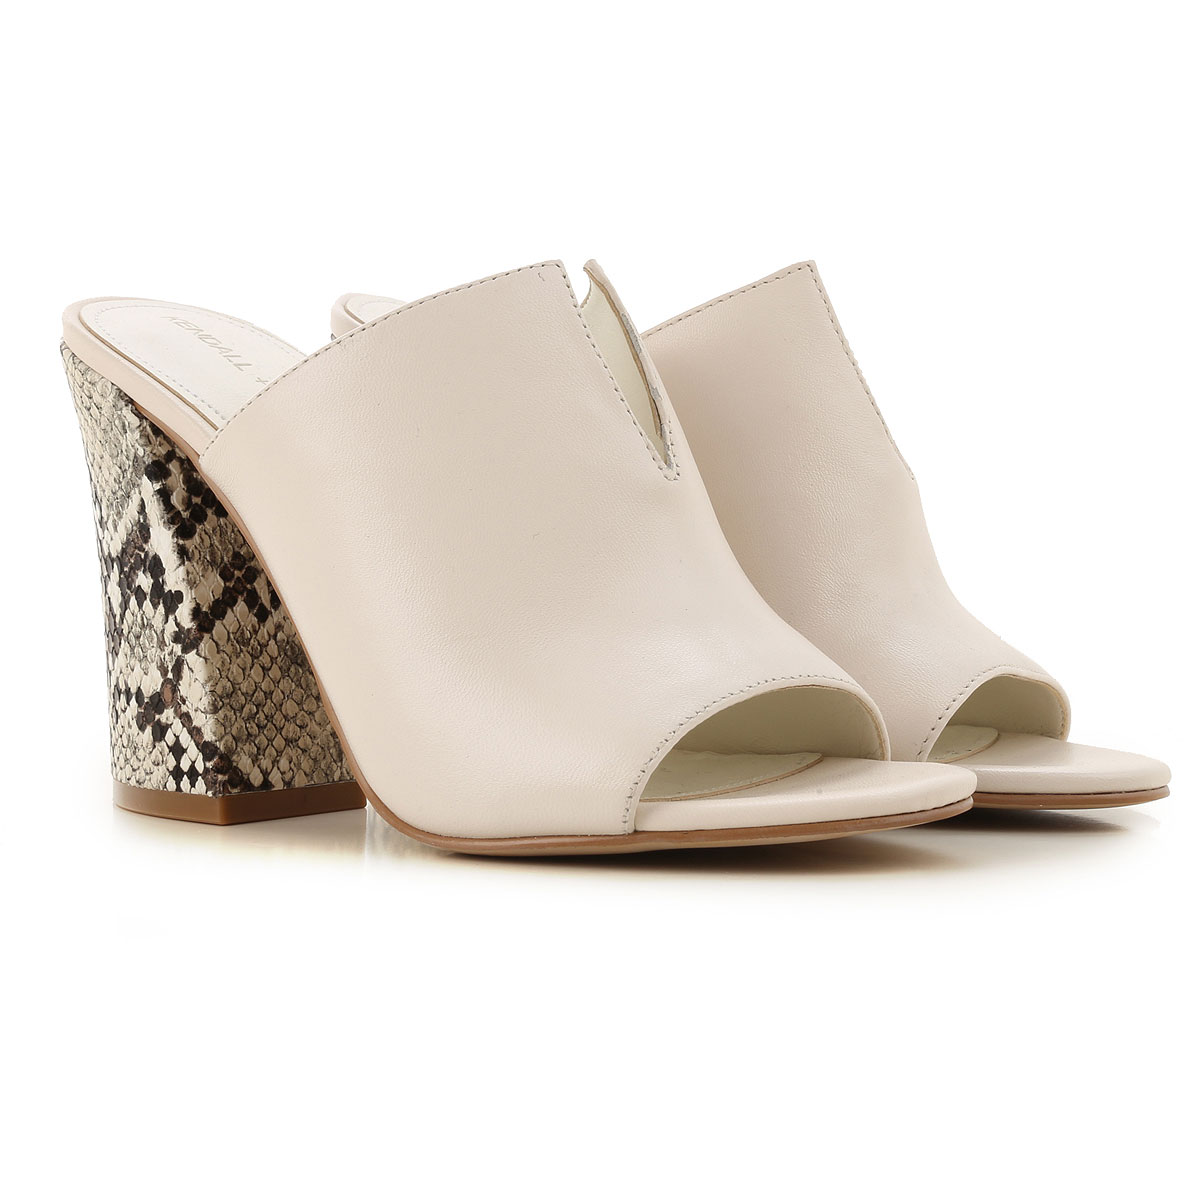 Kendall Kylie Pumps & High Heels for Women On Sale in Outlet, Cream, Leather, 2019, 6 9